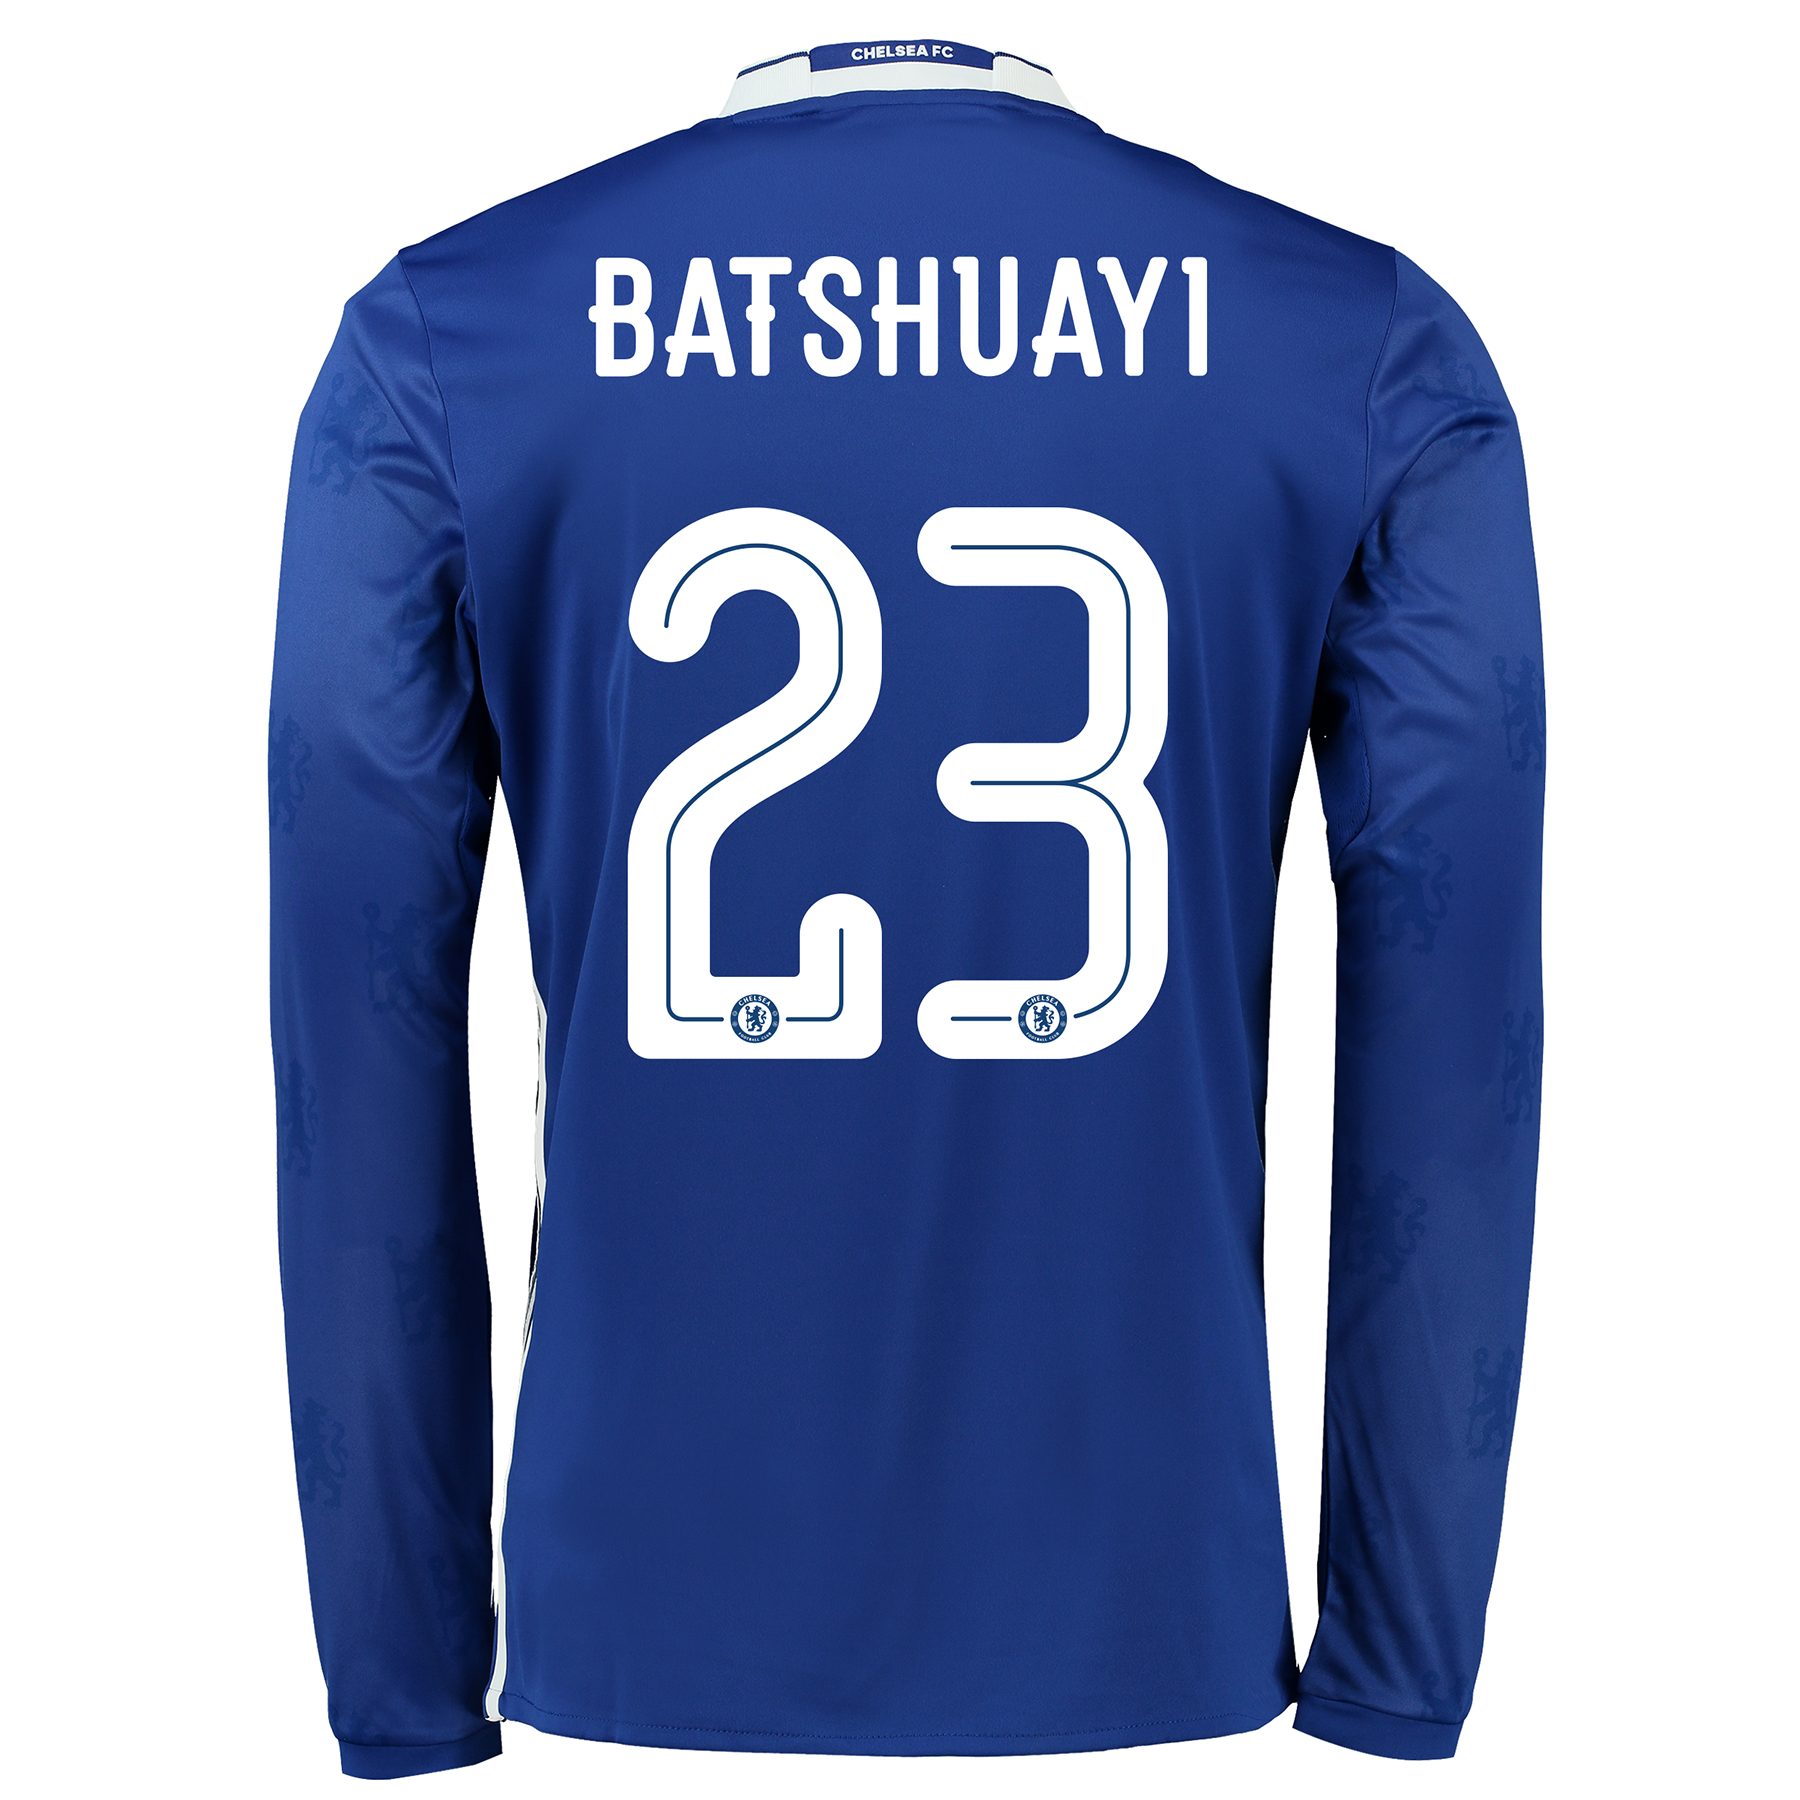 Chelsea Linear Home Shirt 2016-17 - Long Sleeve with Batshuayi 23 prin